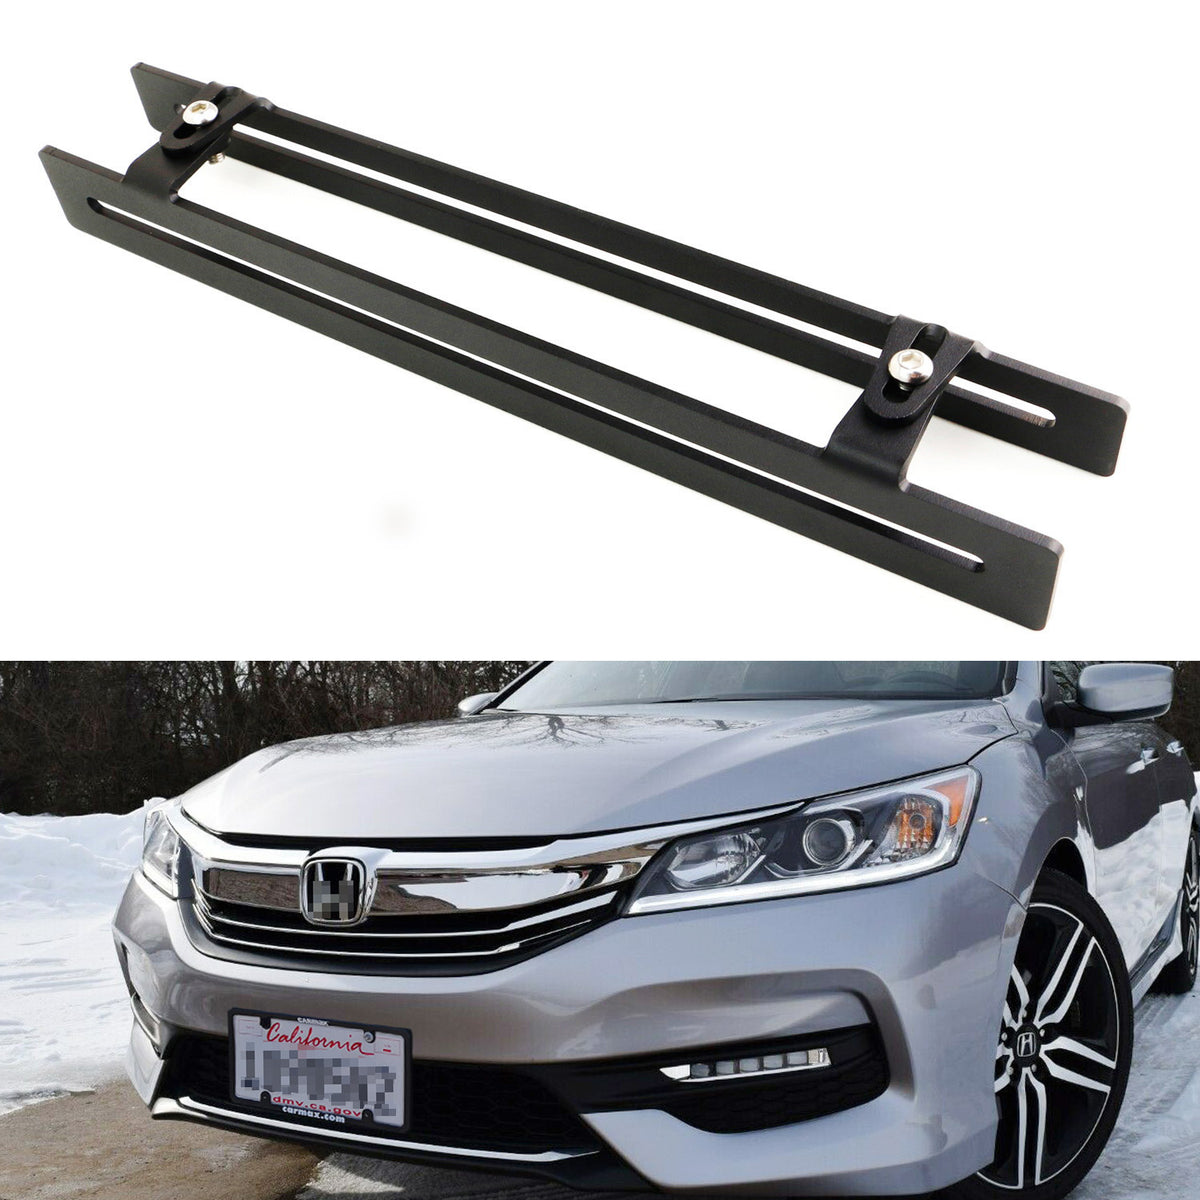 Compatible with 2008-2010 Honda Accord Sedan Bumper Billet Grille Insert S18-A09566H